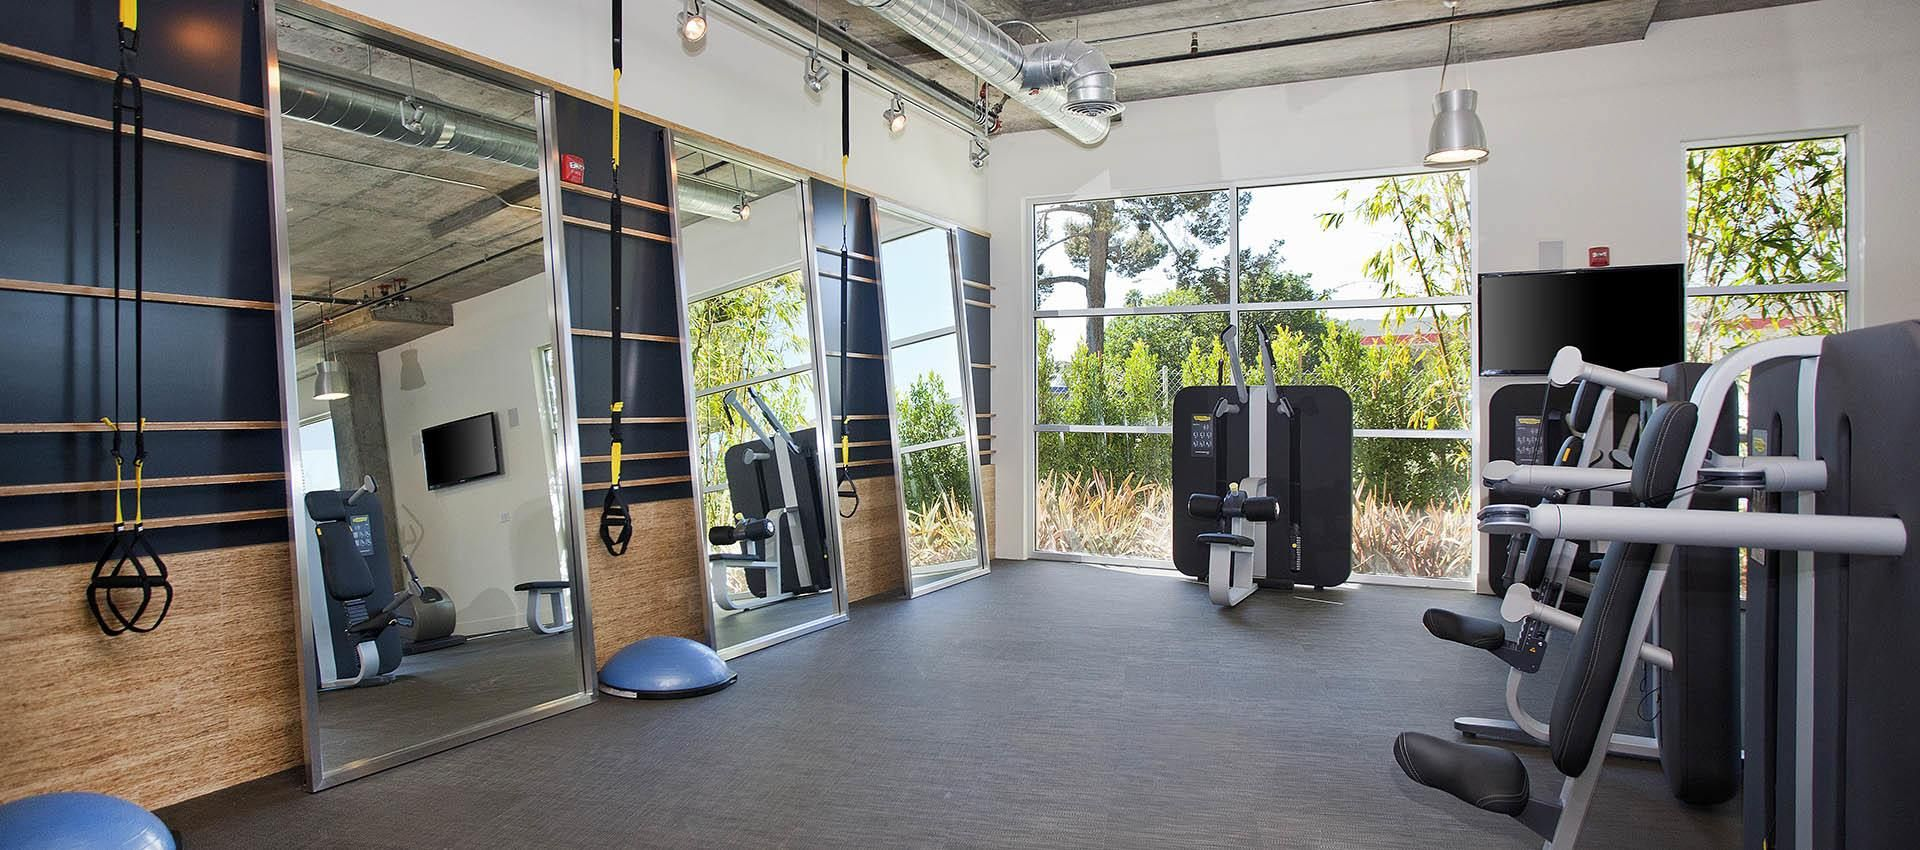 Fitness Center At Apartments In Glendale Ca Apartment Fitness Center Design Los Angeles Apartments